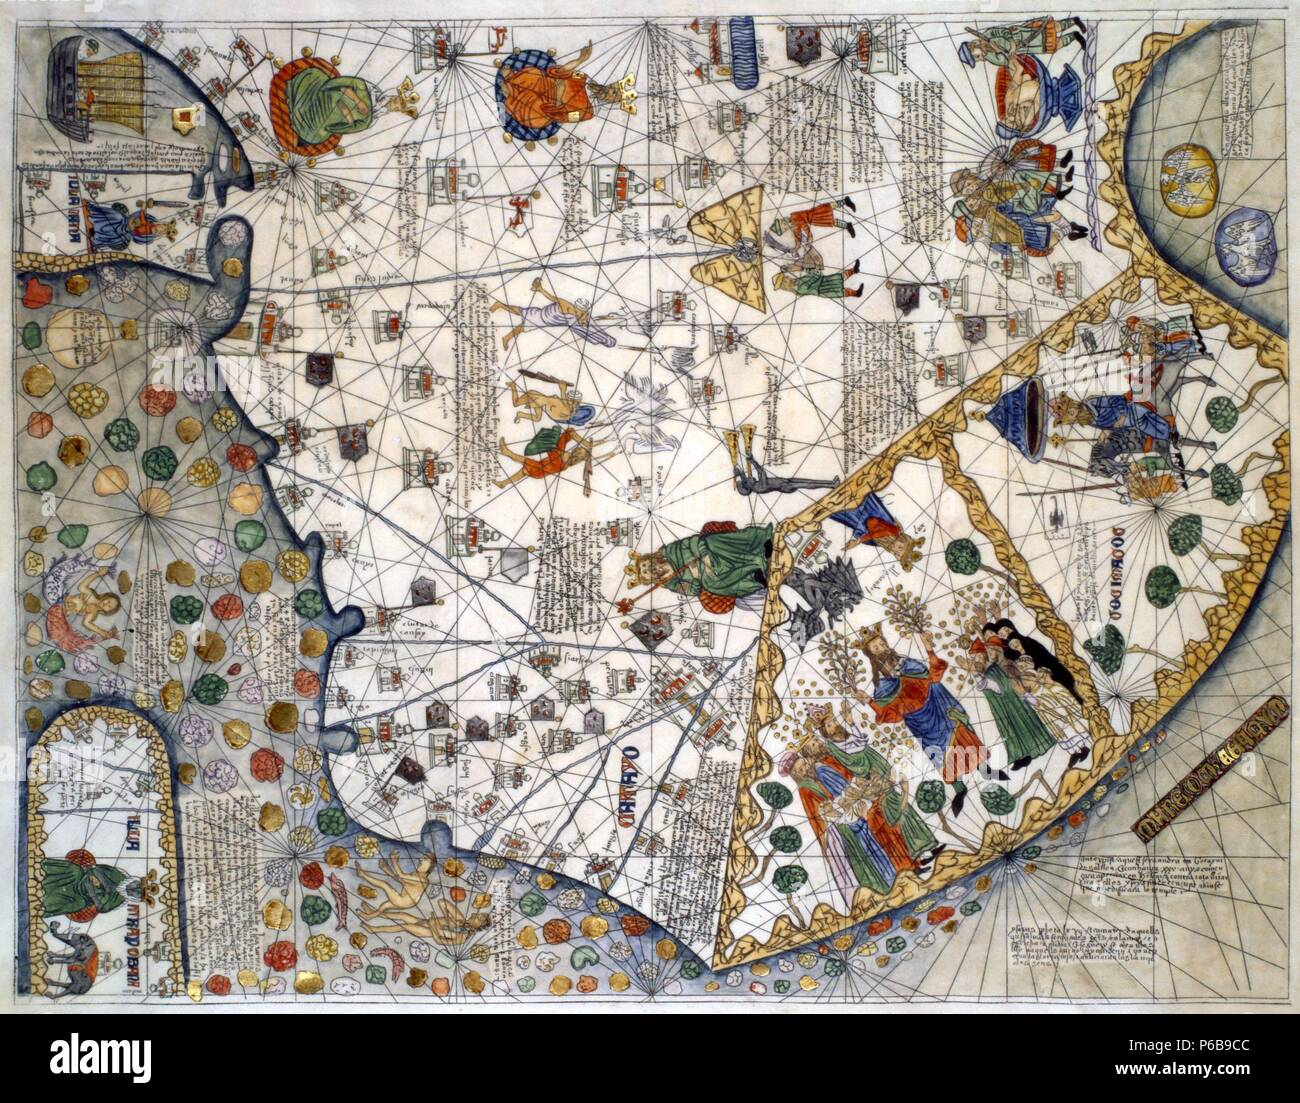 Detail of Asia from the Catalan Atlas by Abraham Cresques, c. 1375. Museum: Museo Marítimo, Barcelona. Stock Photo